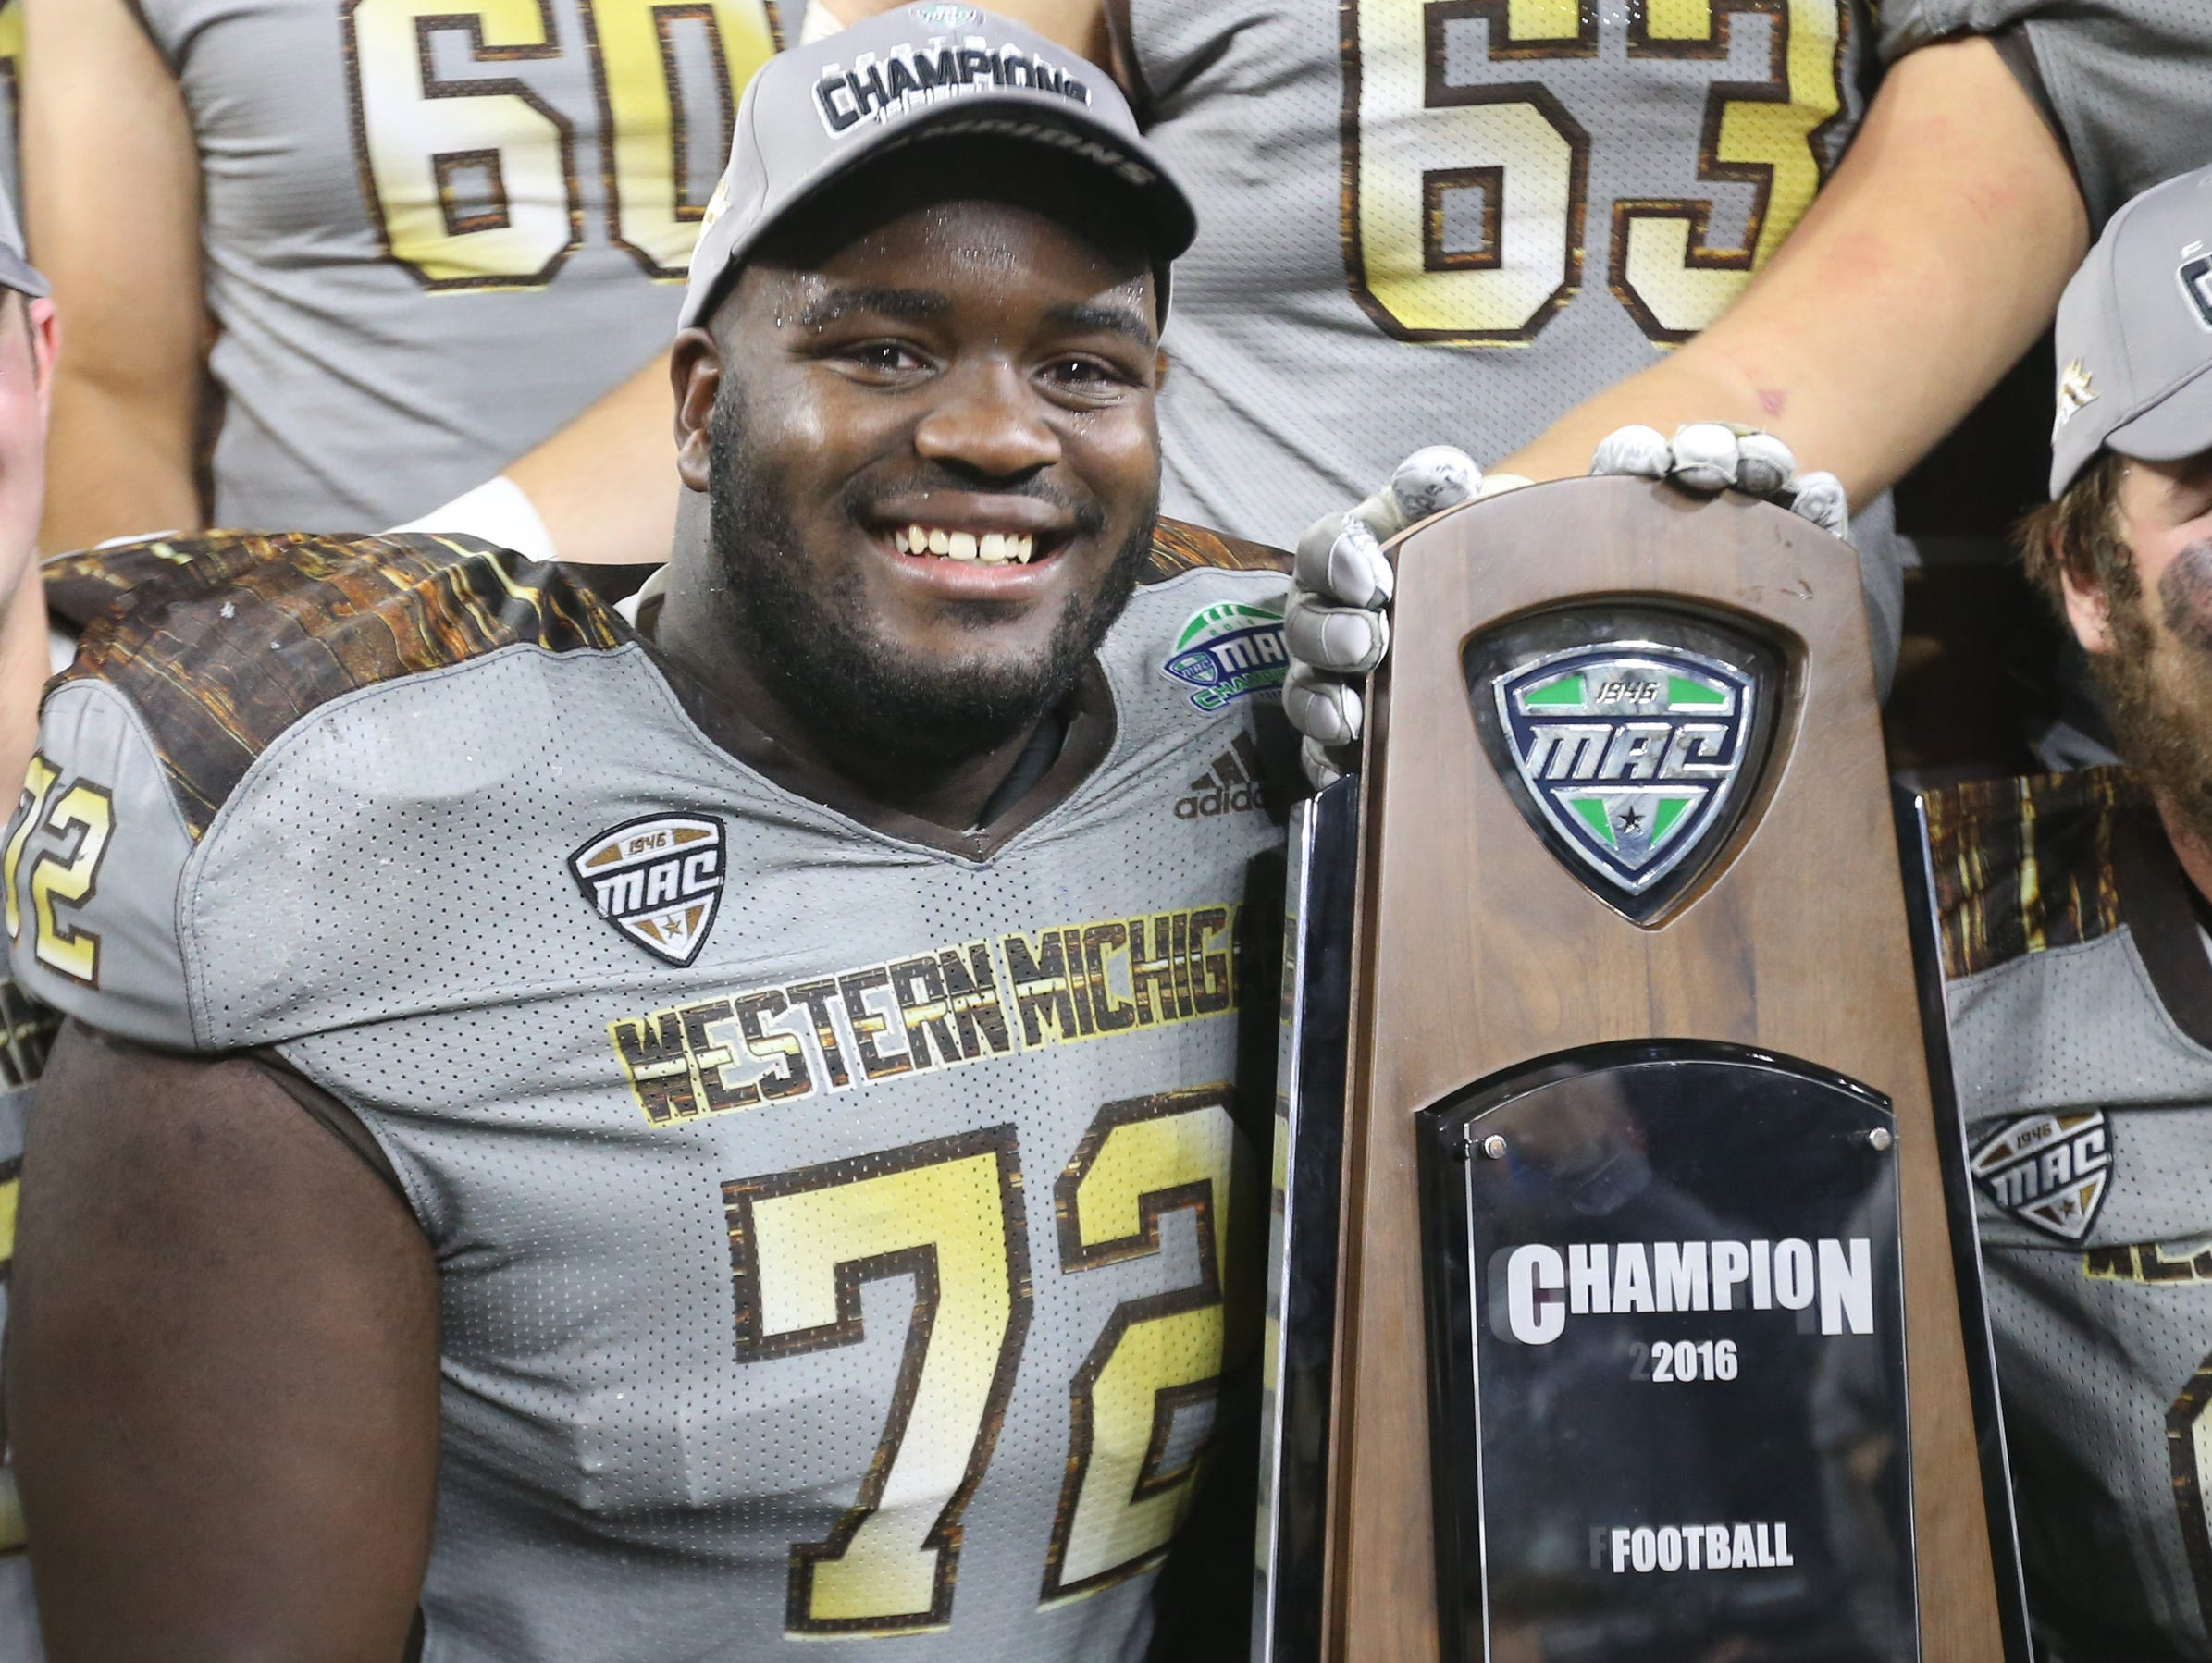 Western Michigan lineman Taylor Moton celebrates the 29-23 win over Ohio in the MAC Championship Friday, Dec. 2, 2016 at Ford Field in Detroi.